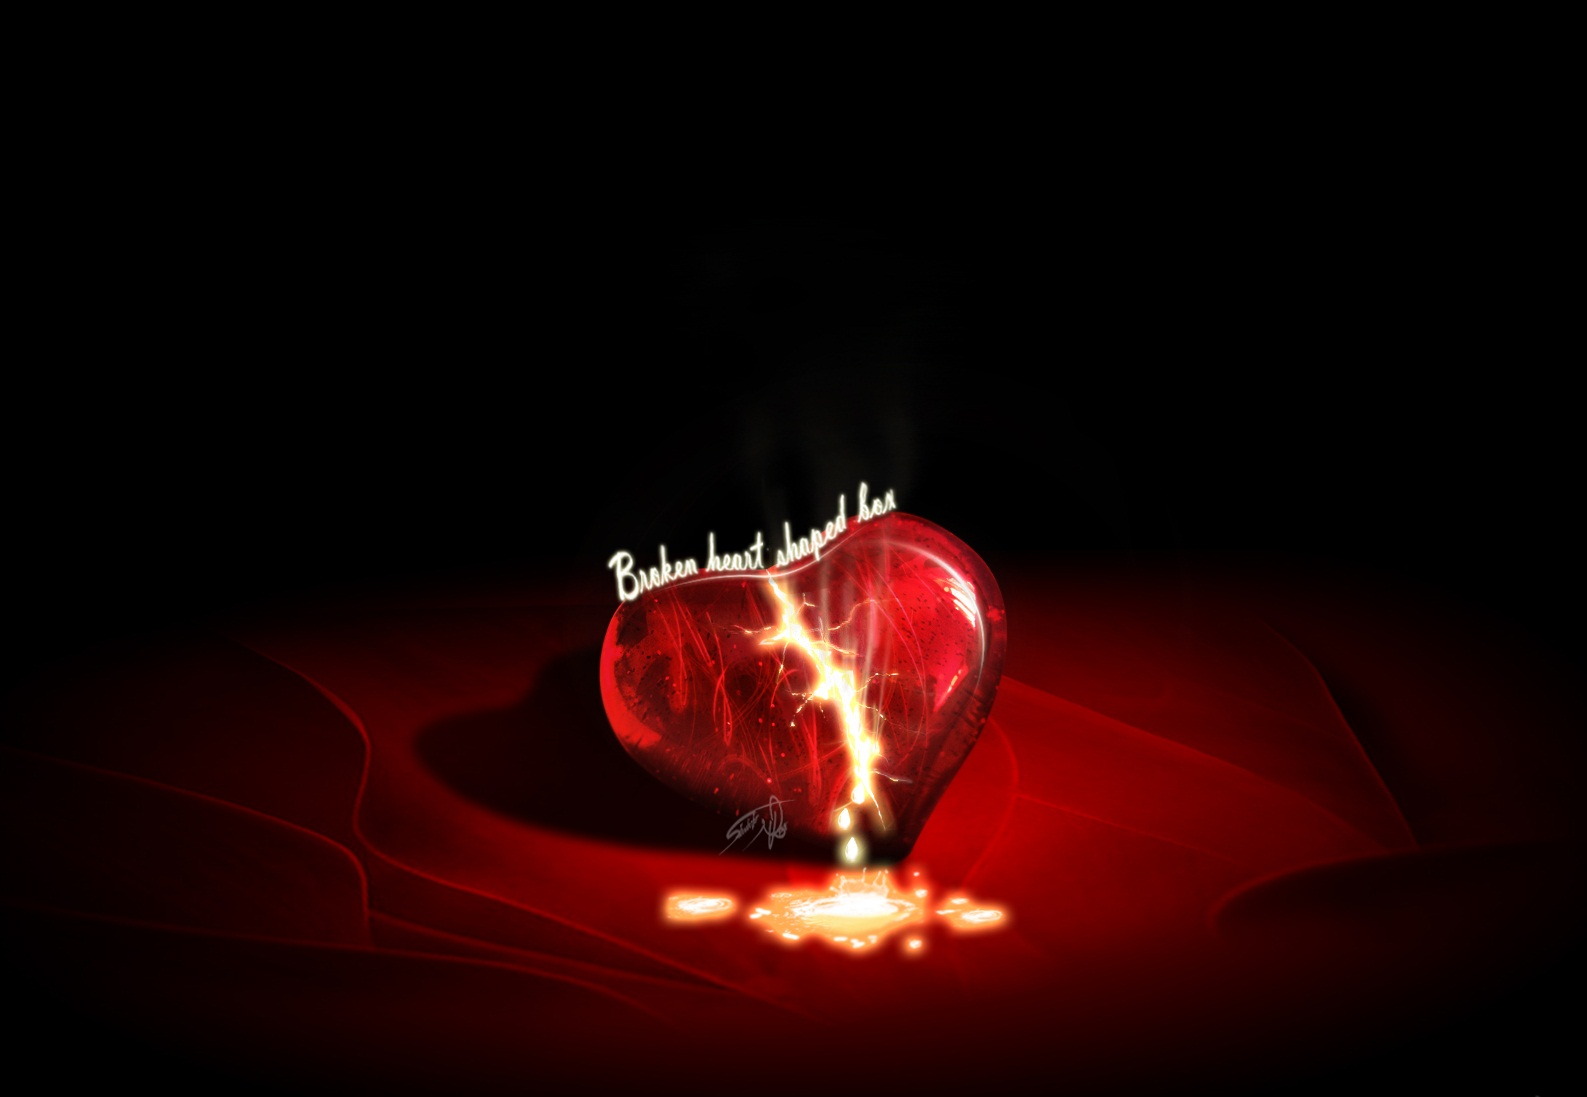 Broken Heart Wallpaper Iphone Xr